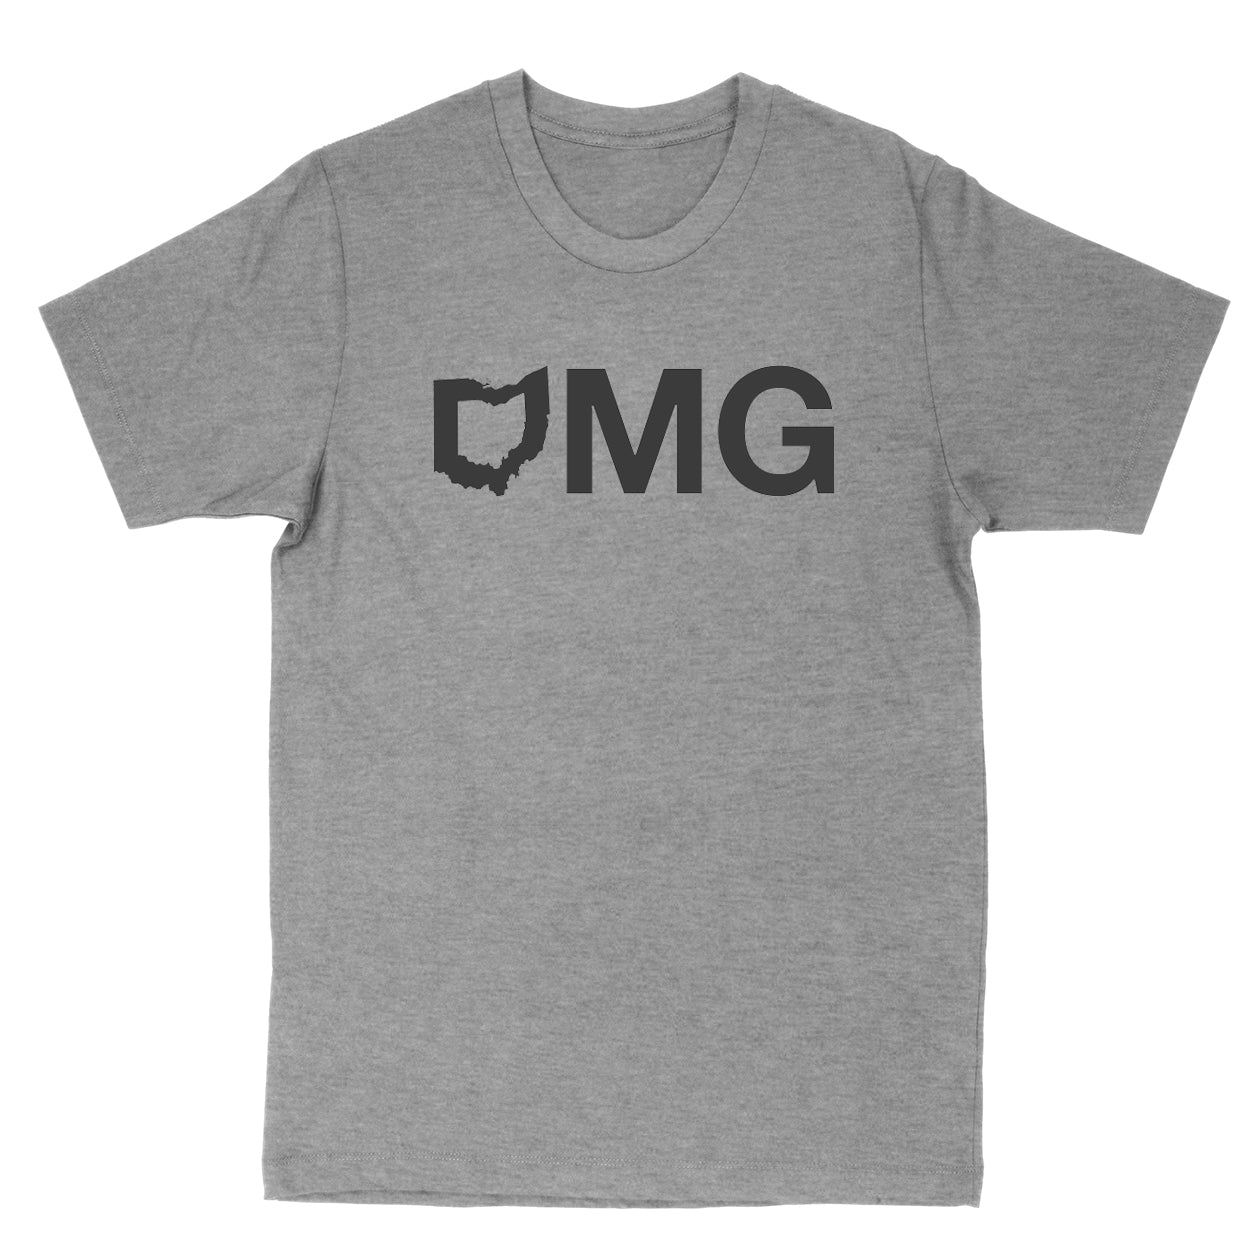 Omg Ohio Men's T-Shirt - Clothe Ohio - Soft Ohio Shirts